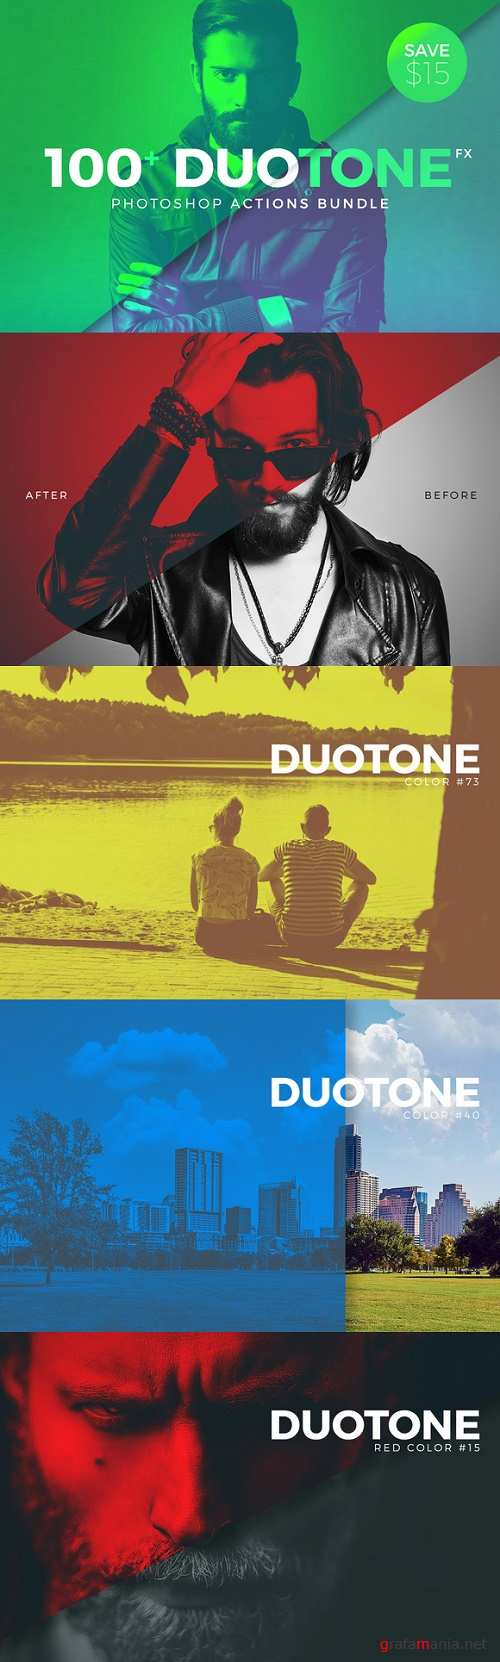 Duotone Photoshop Action Pack - 619827